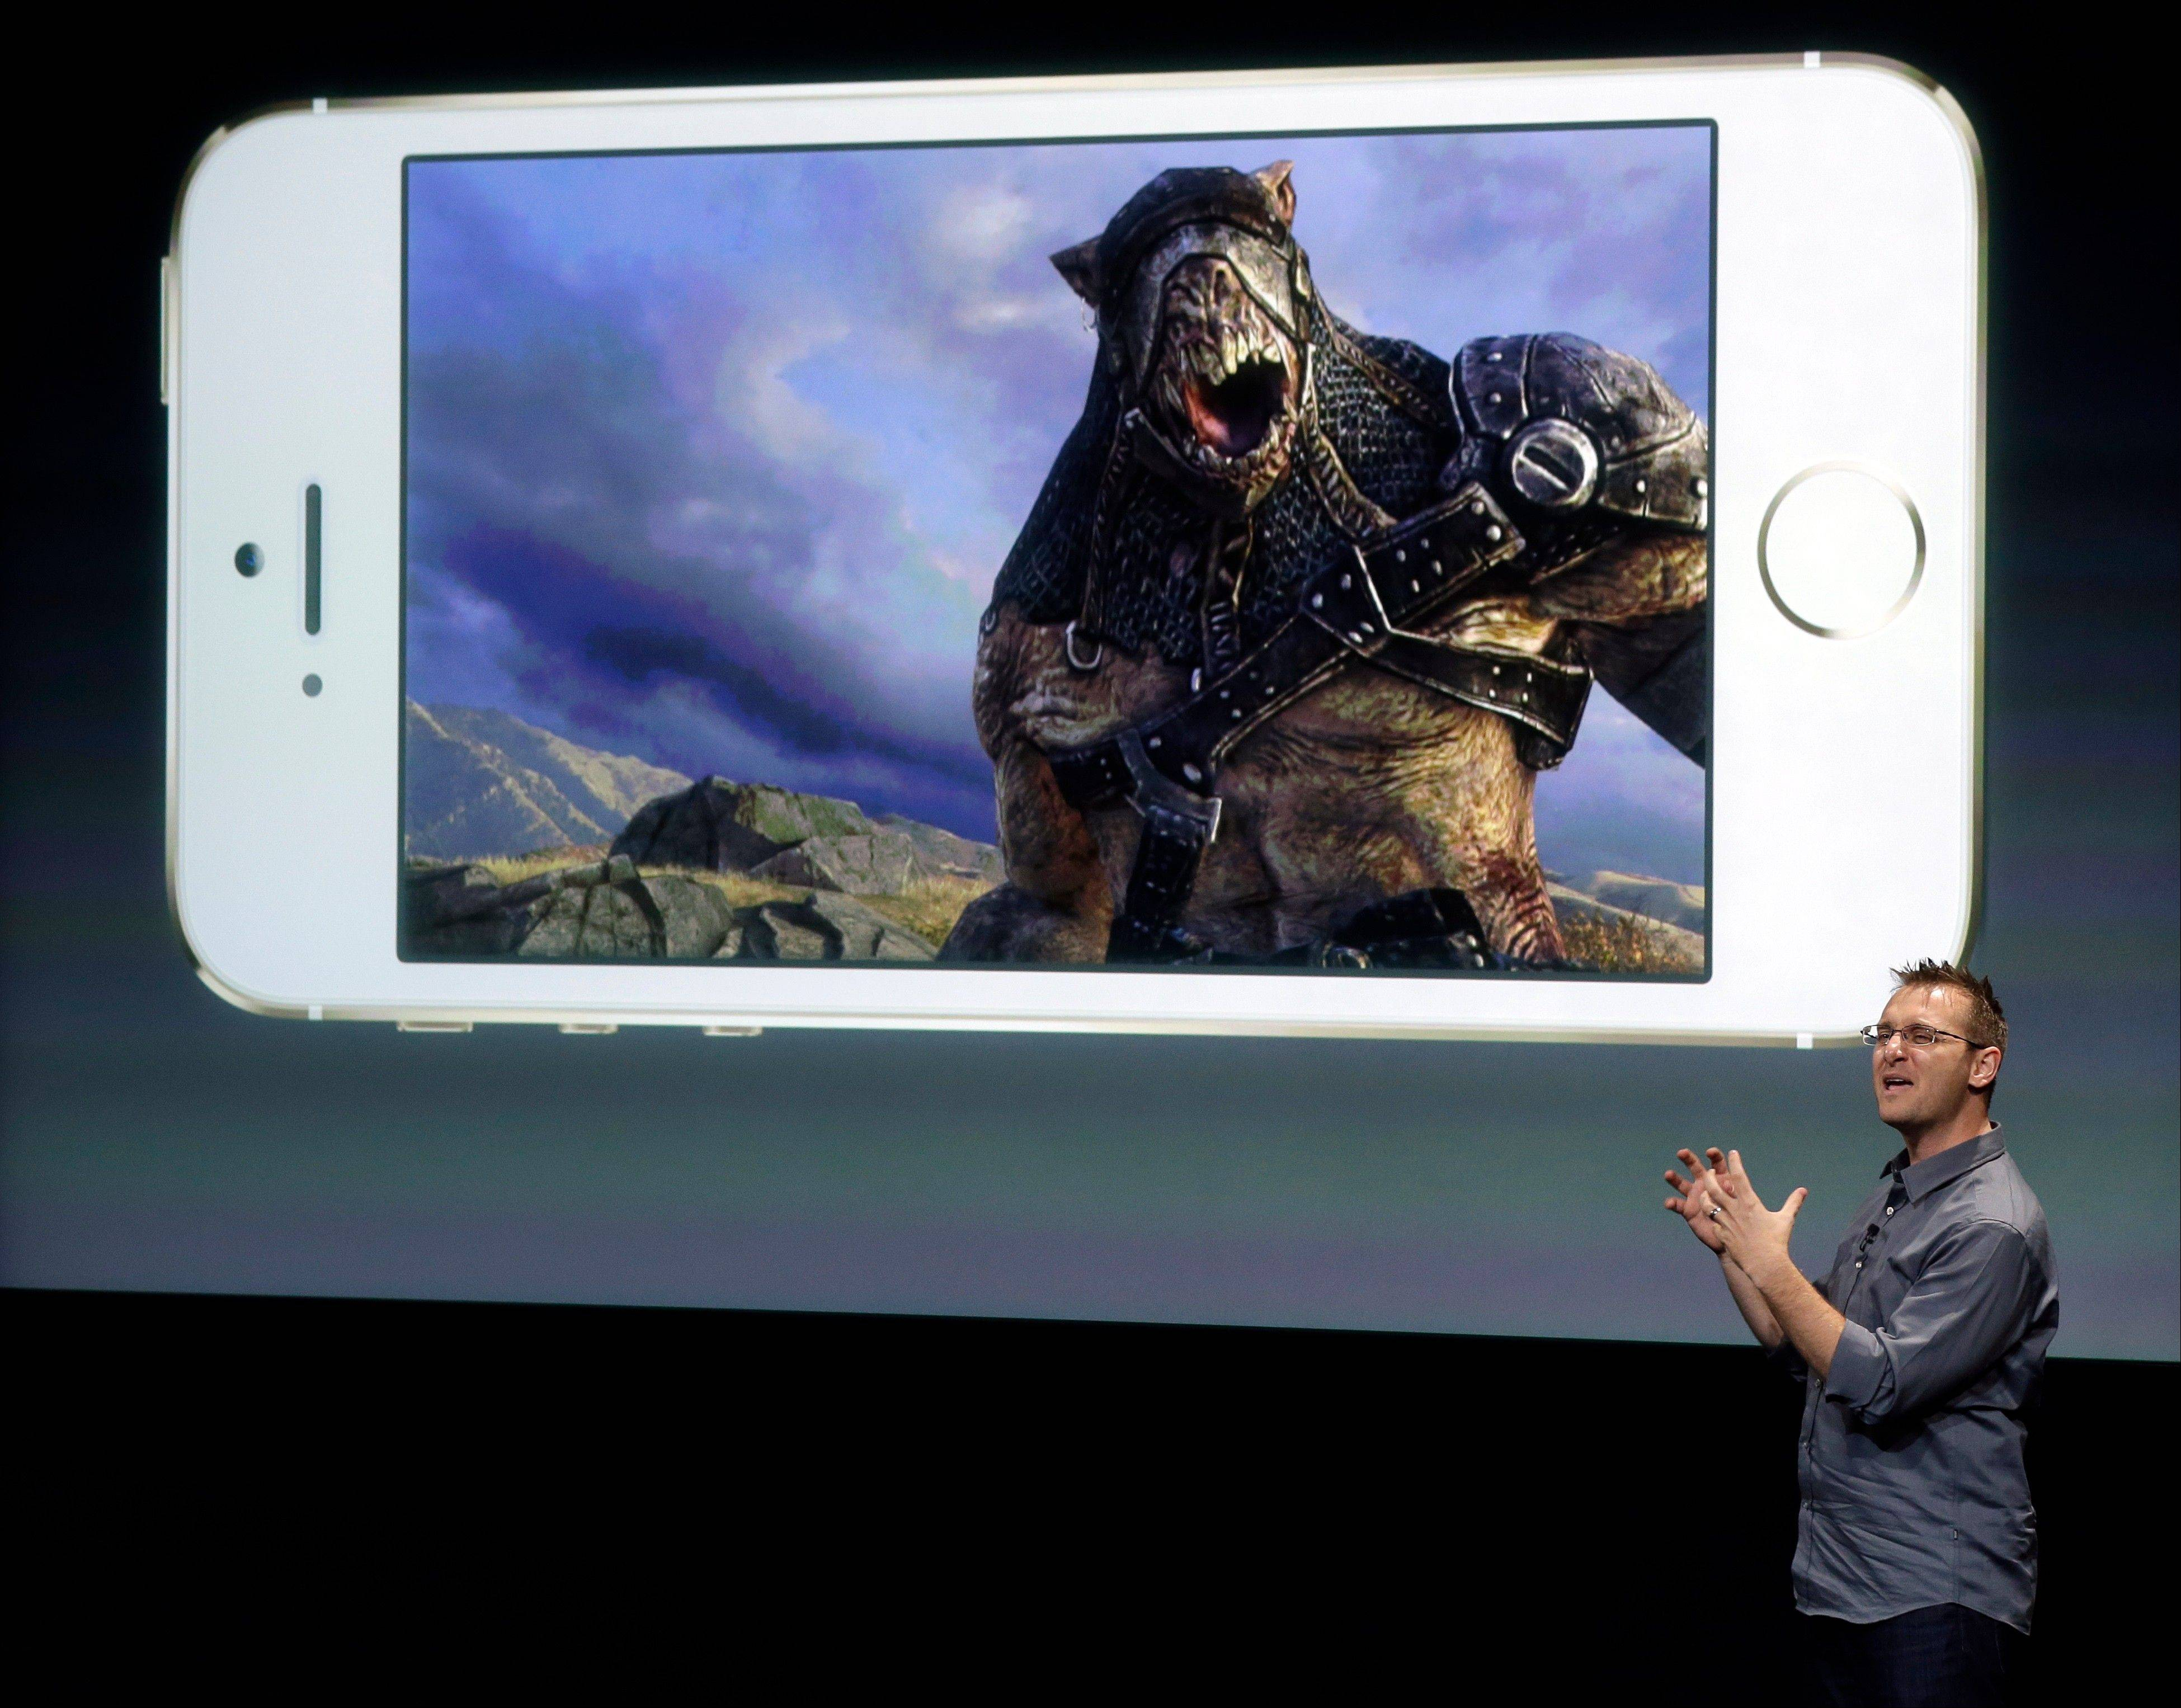 Donald Mustard, CEO of Epic Games, speaks on stage during the introduction of the new iPhone 5s in Cupertino, Calif., Tuesday, Sept. 10, 2013.